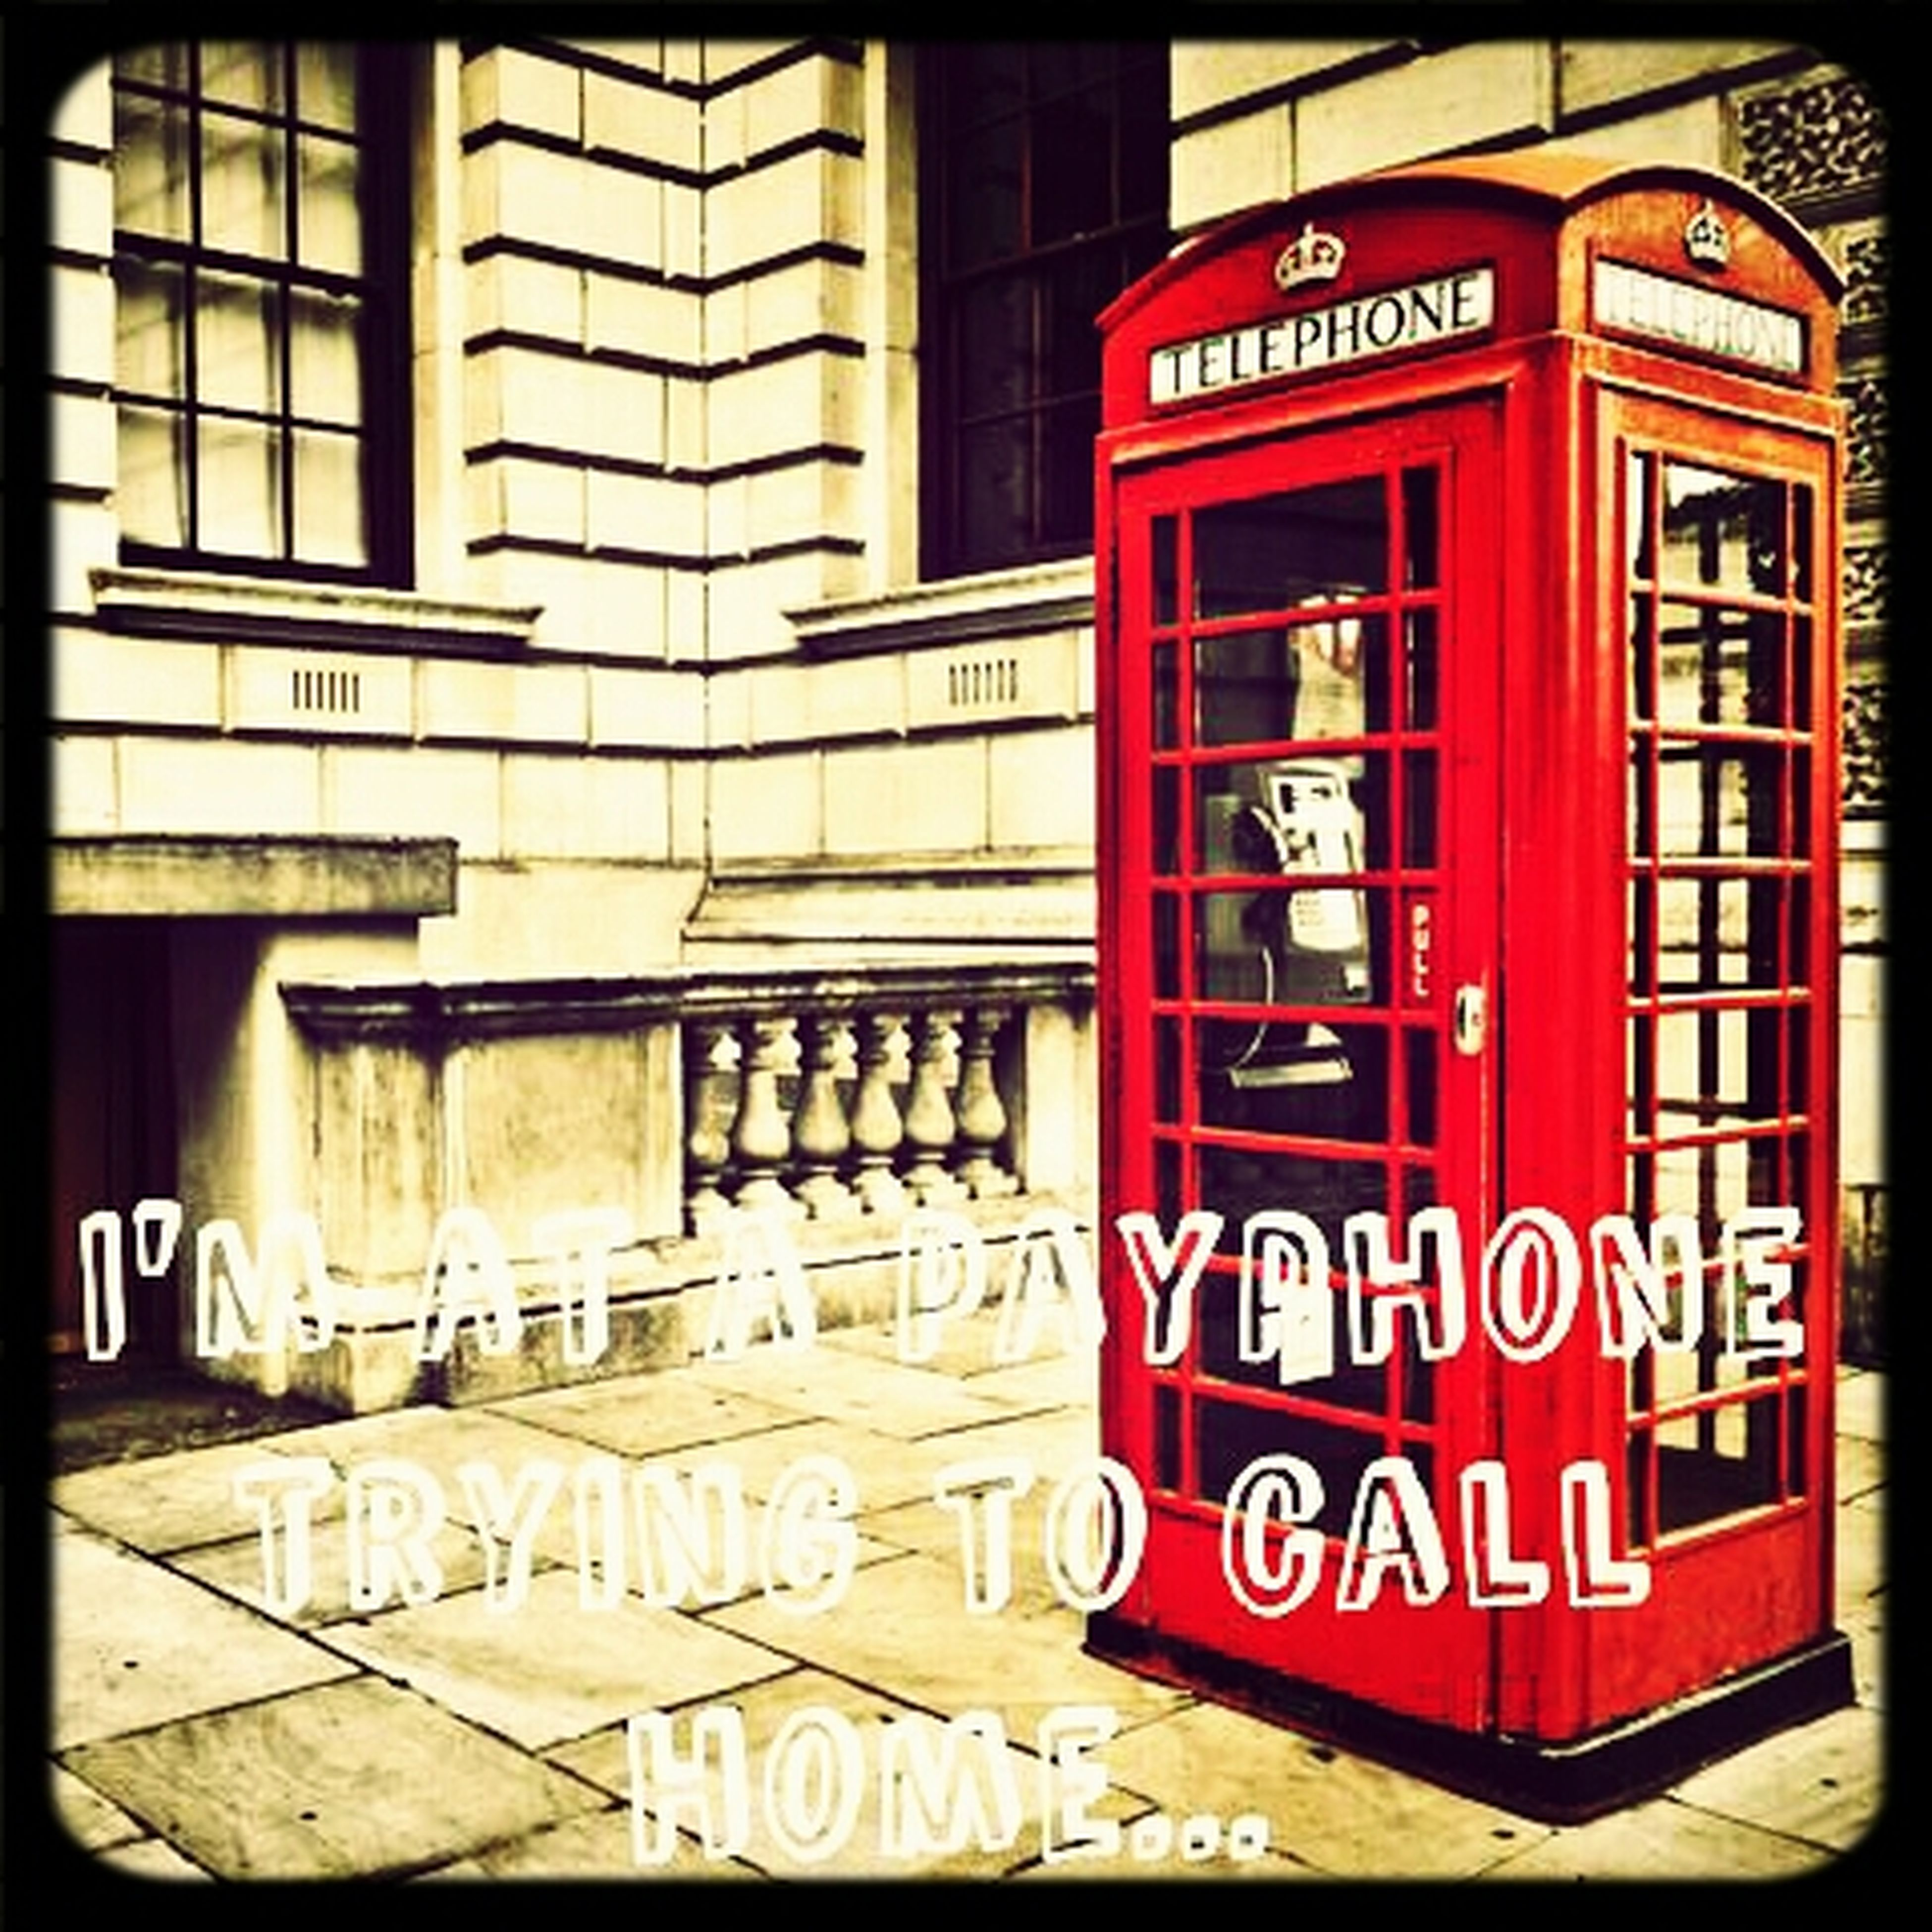 Bored Af vintage telephoneBooth. made with picsart.